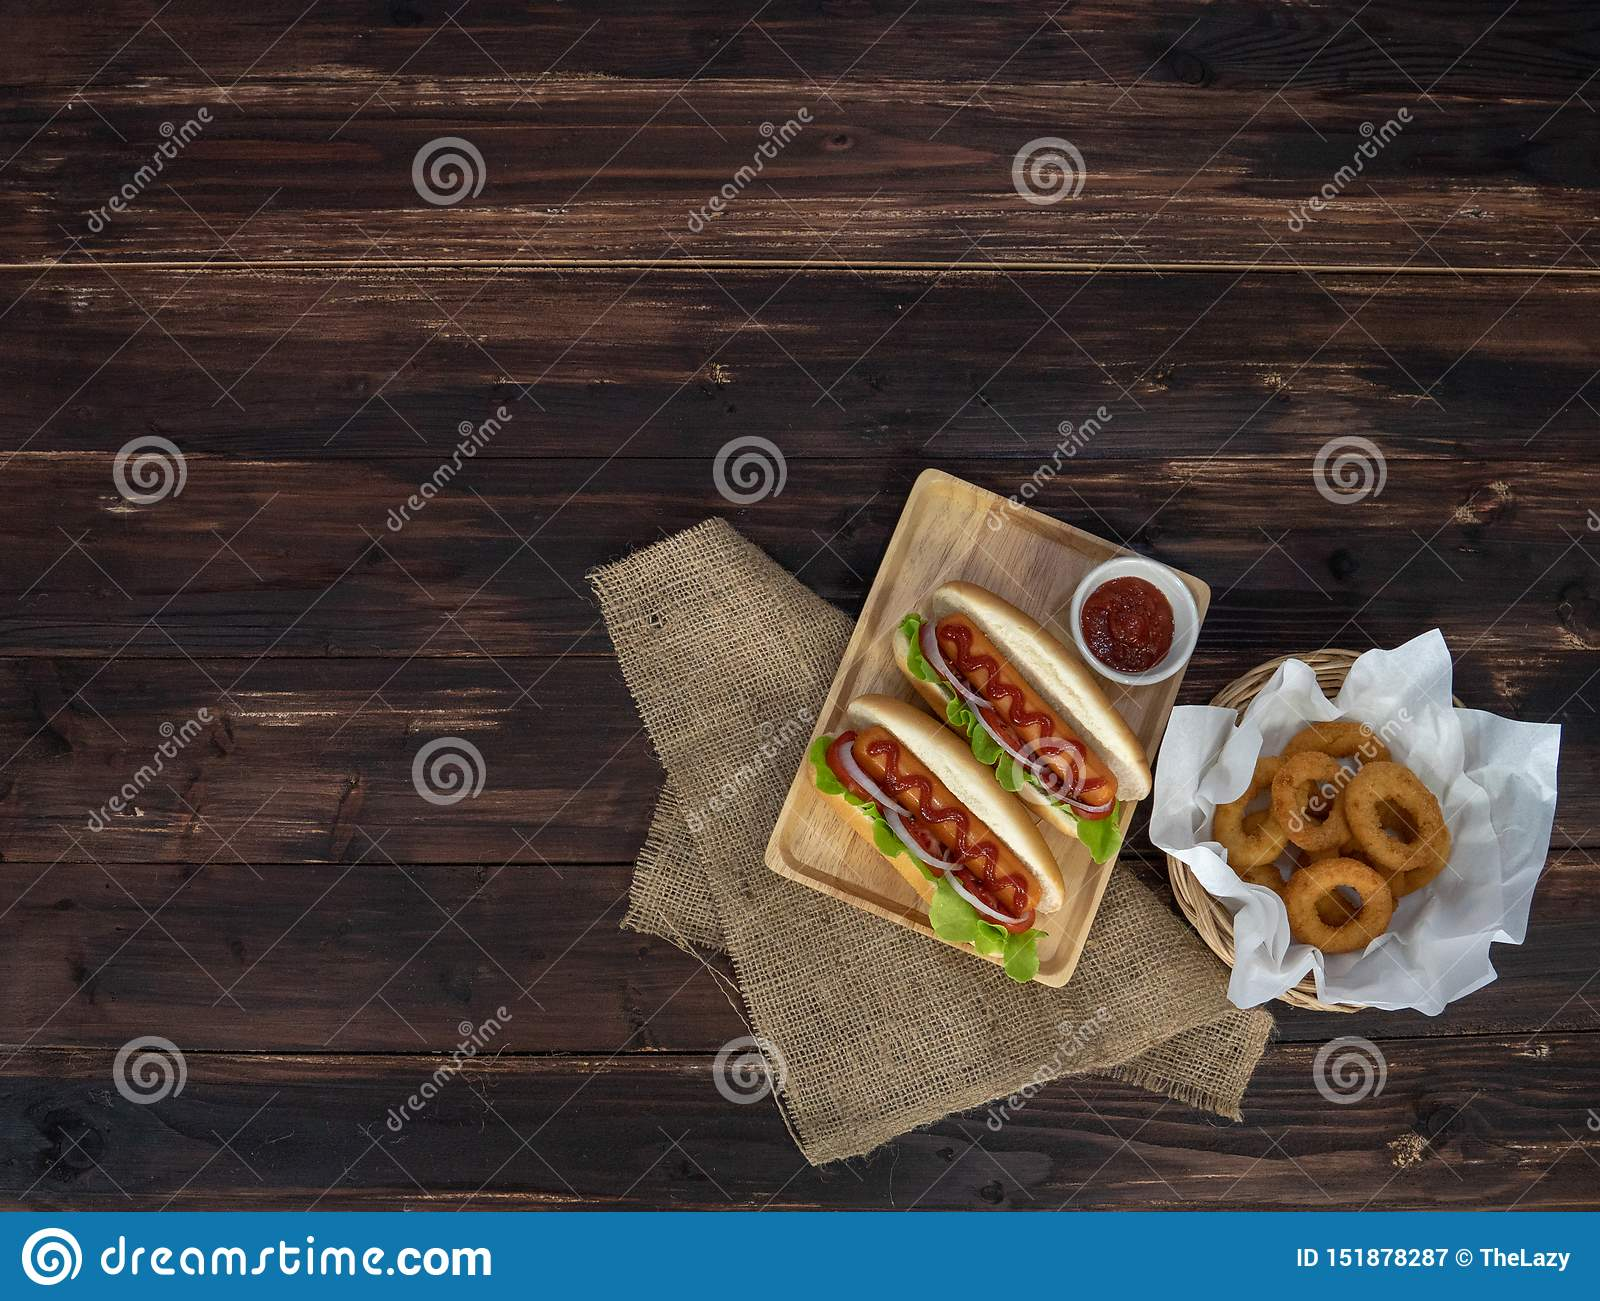 Hotdogs and fried onion rings, beautifully arranged, appetizing on the brown wooden dining table